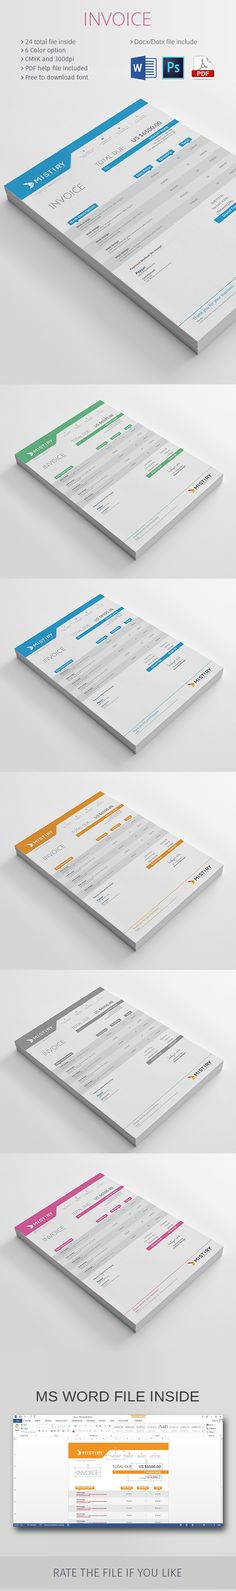 Check out new work on my @Behance portfolio  - check invoice